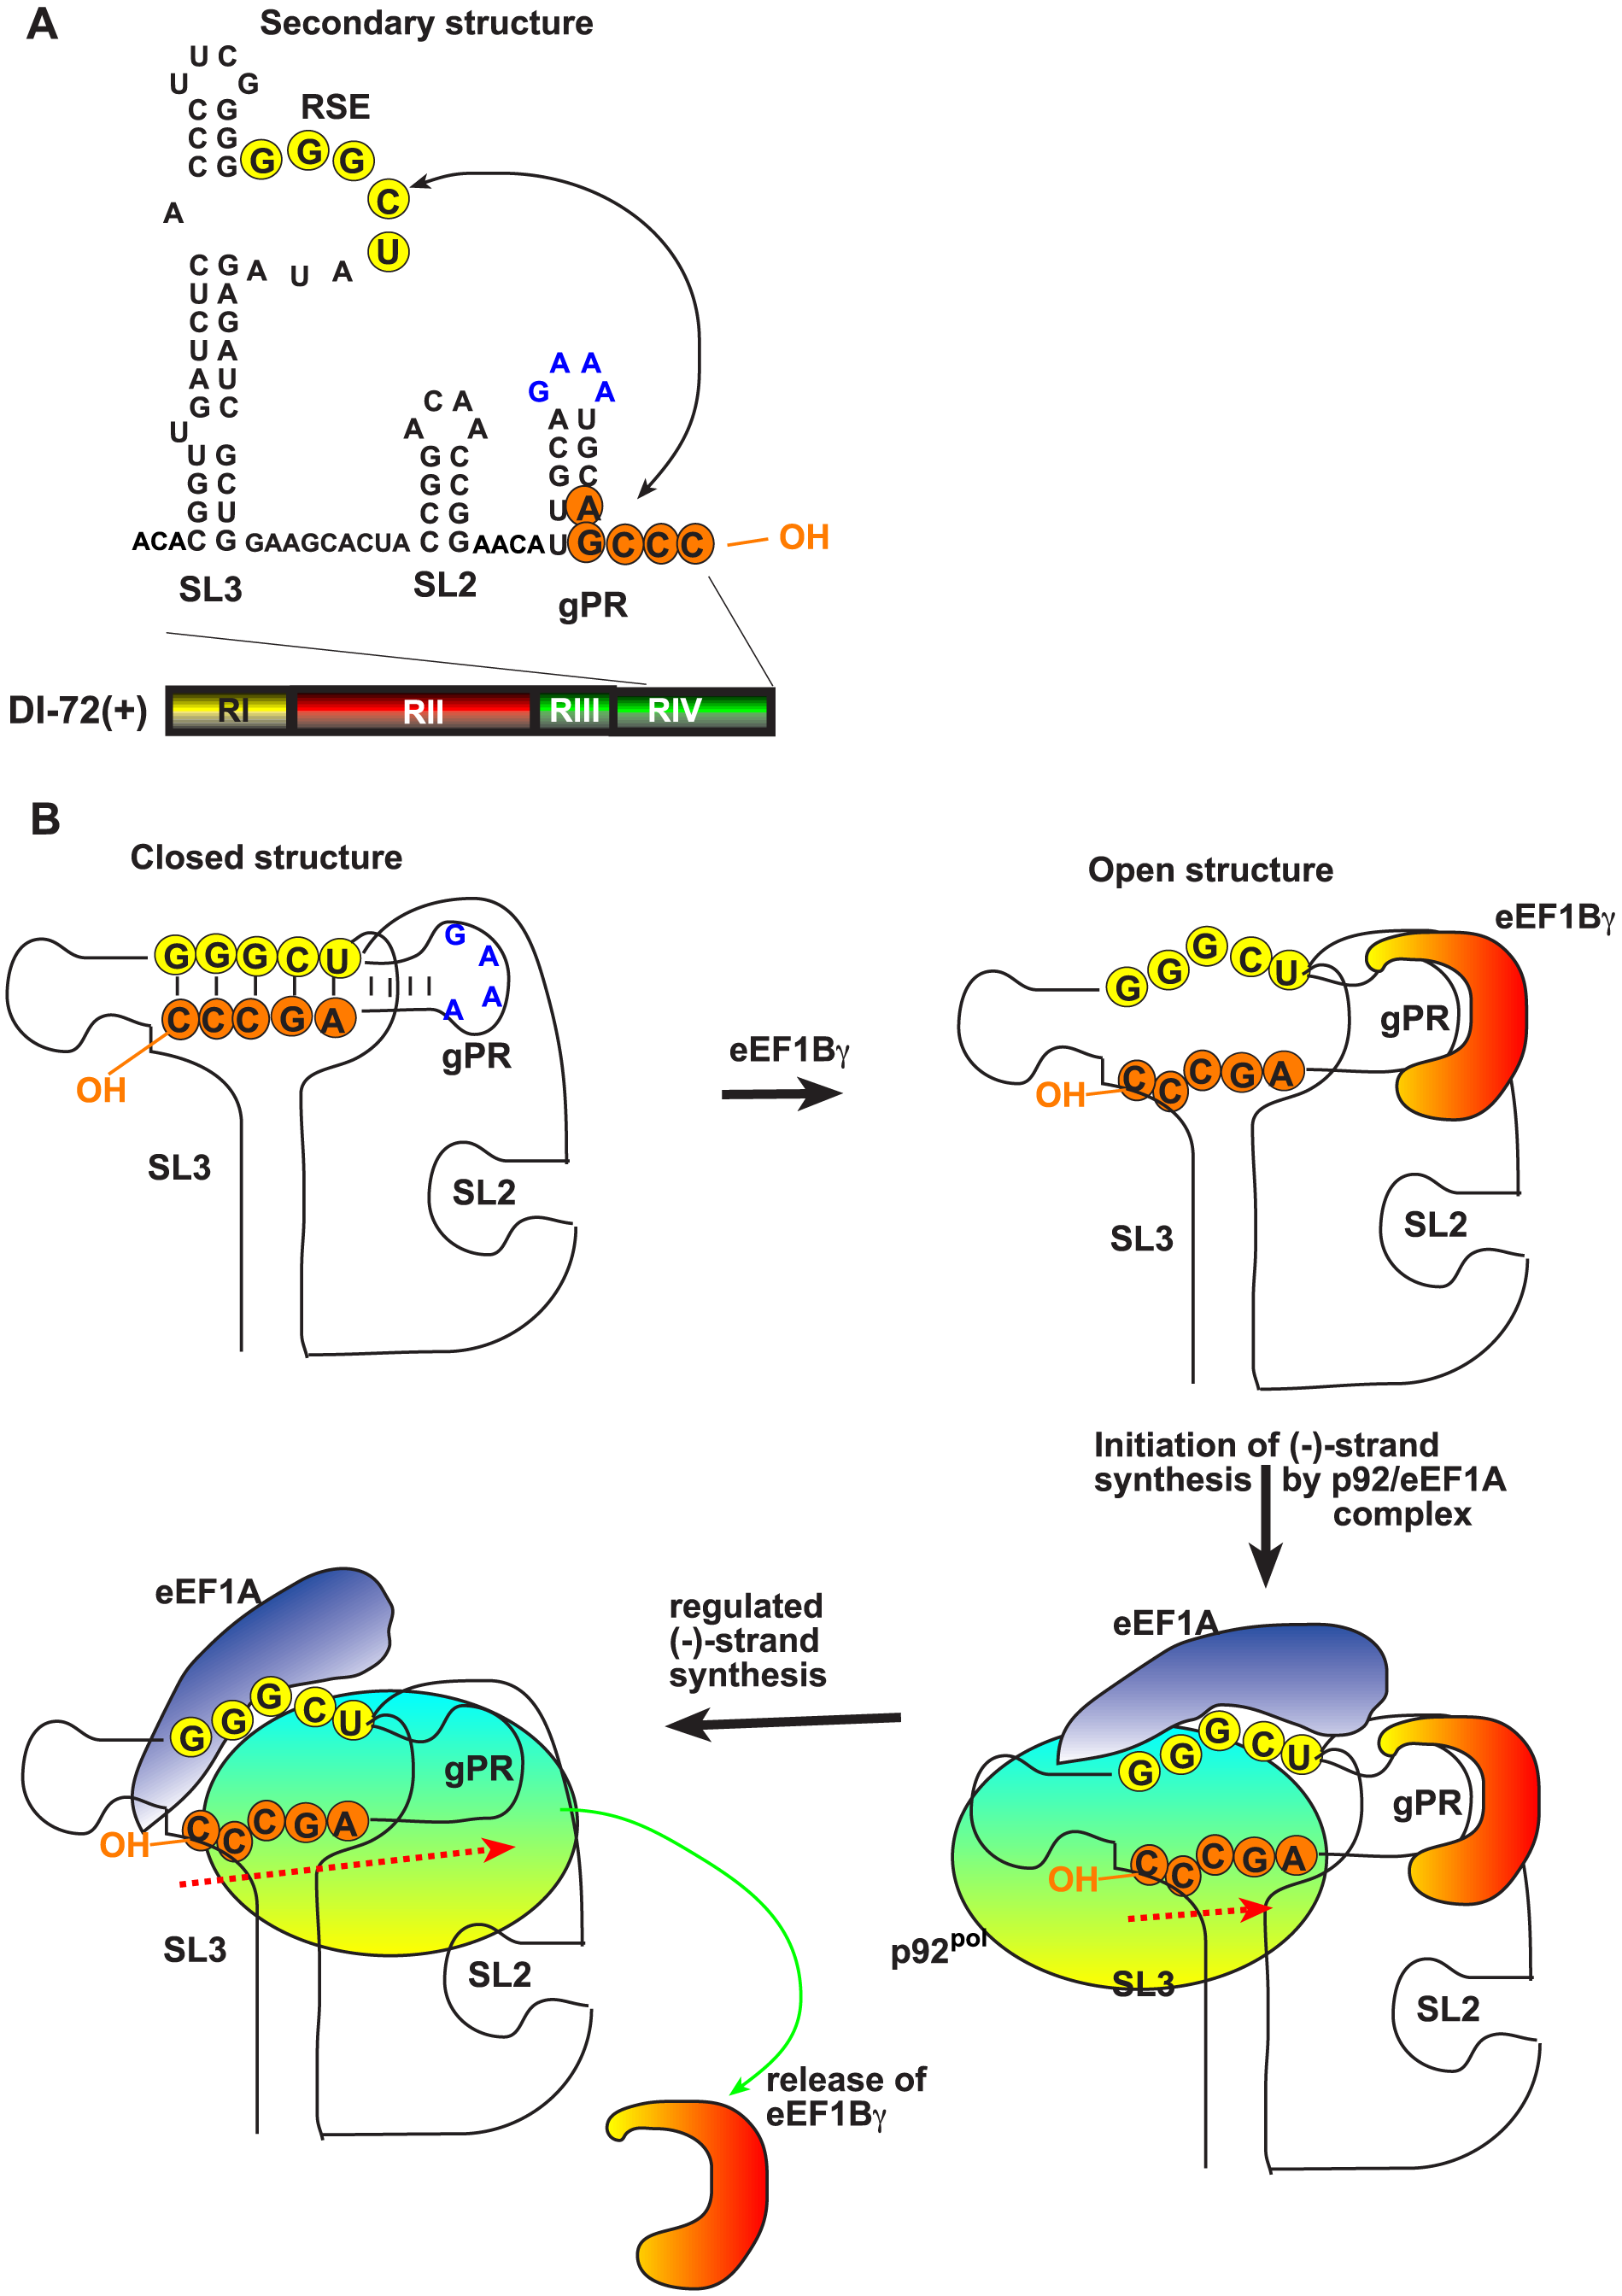 A model describing the functions of eEF1Bγ and eEF1A during tombusvirus replication.